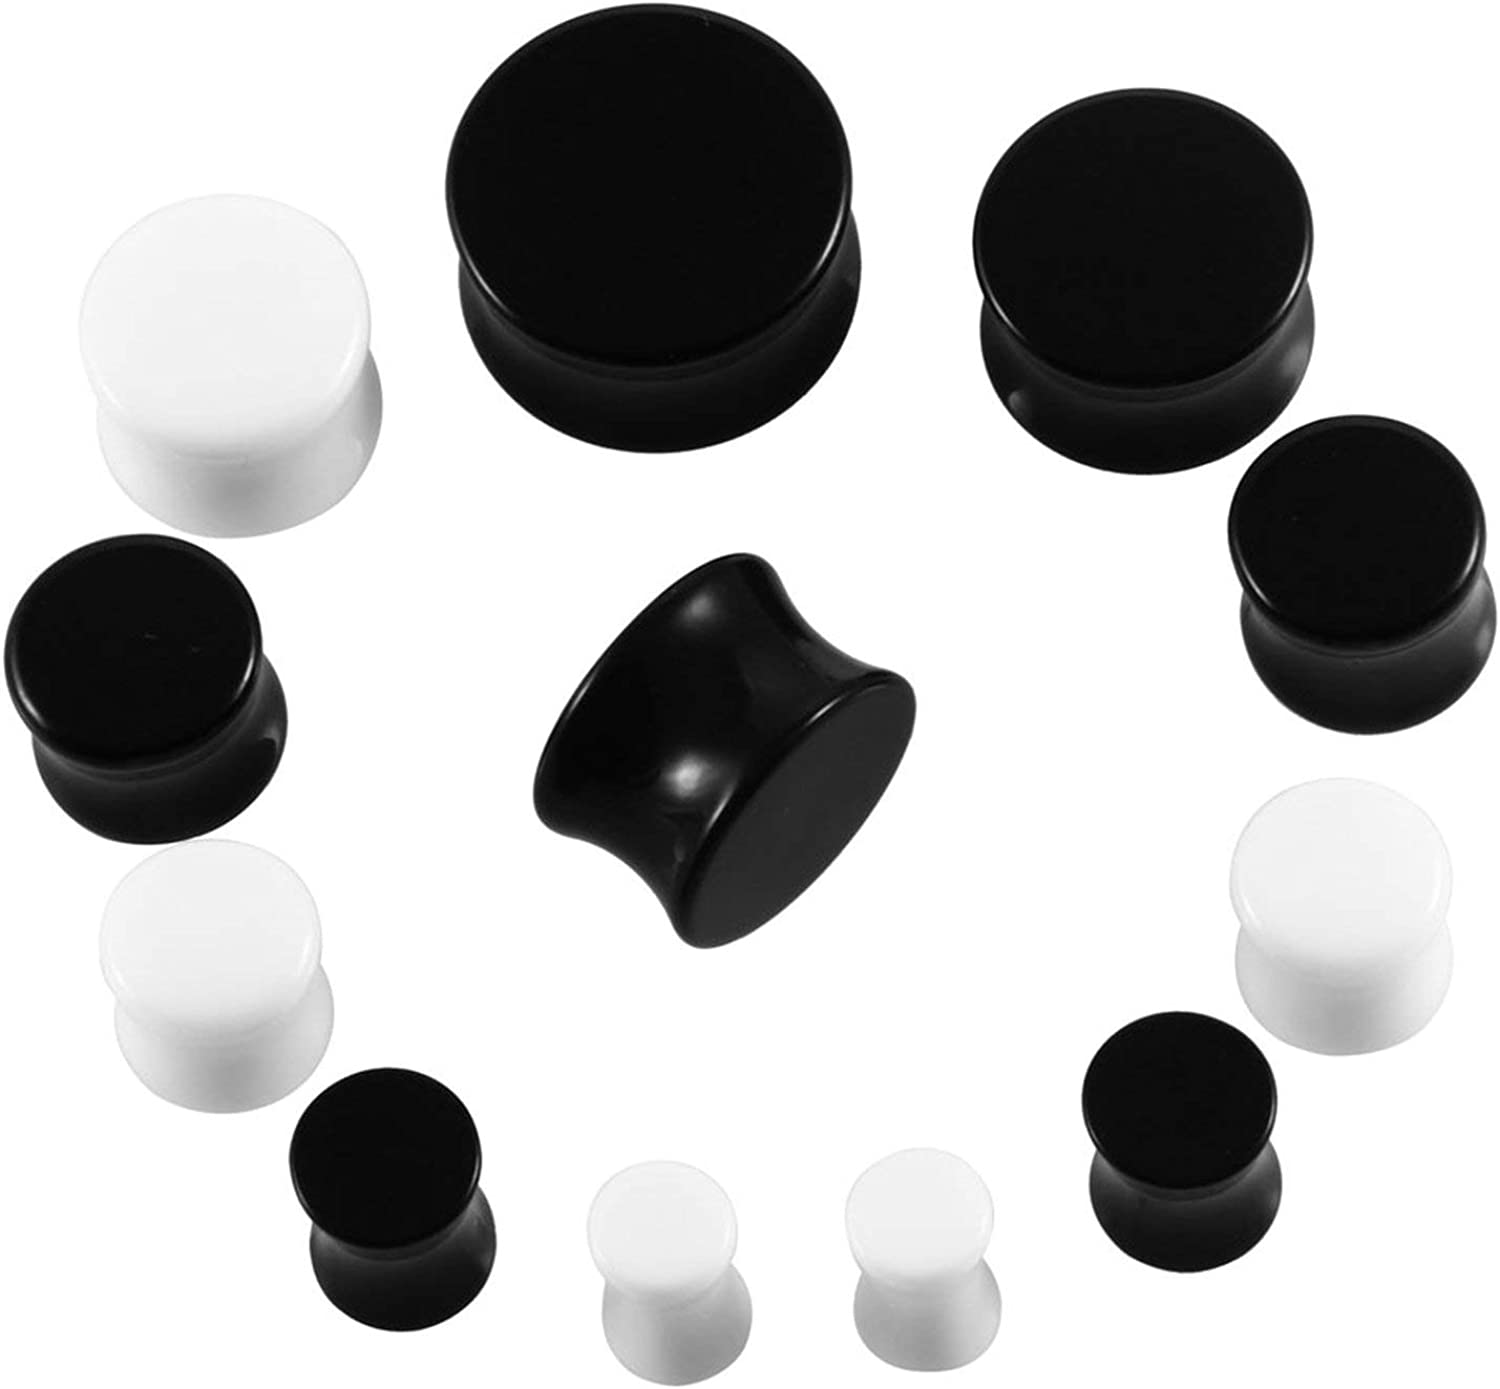 Pair White/&Black Acrylic Ear Tunnel Plug Simple Styles Ear Gauges Piercing Double Curved Saddle Expander Stretcher Body Jewelry,18mm,White